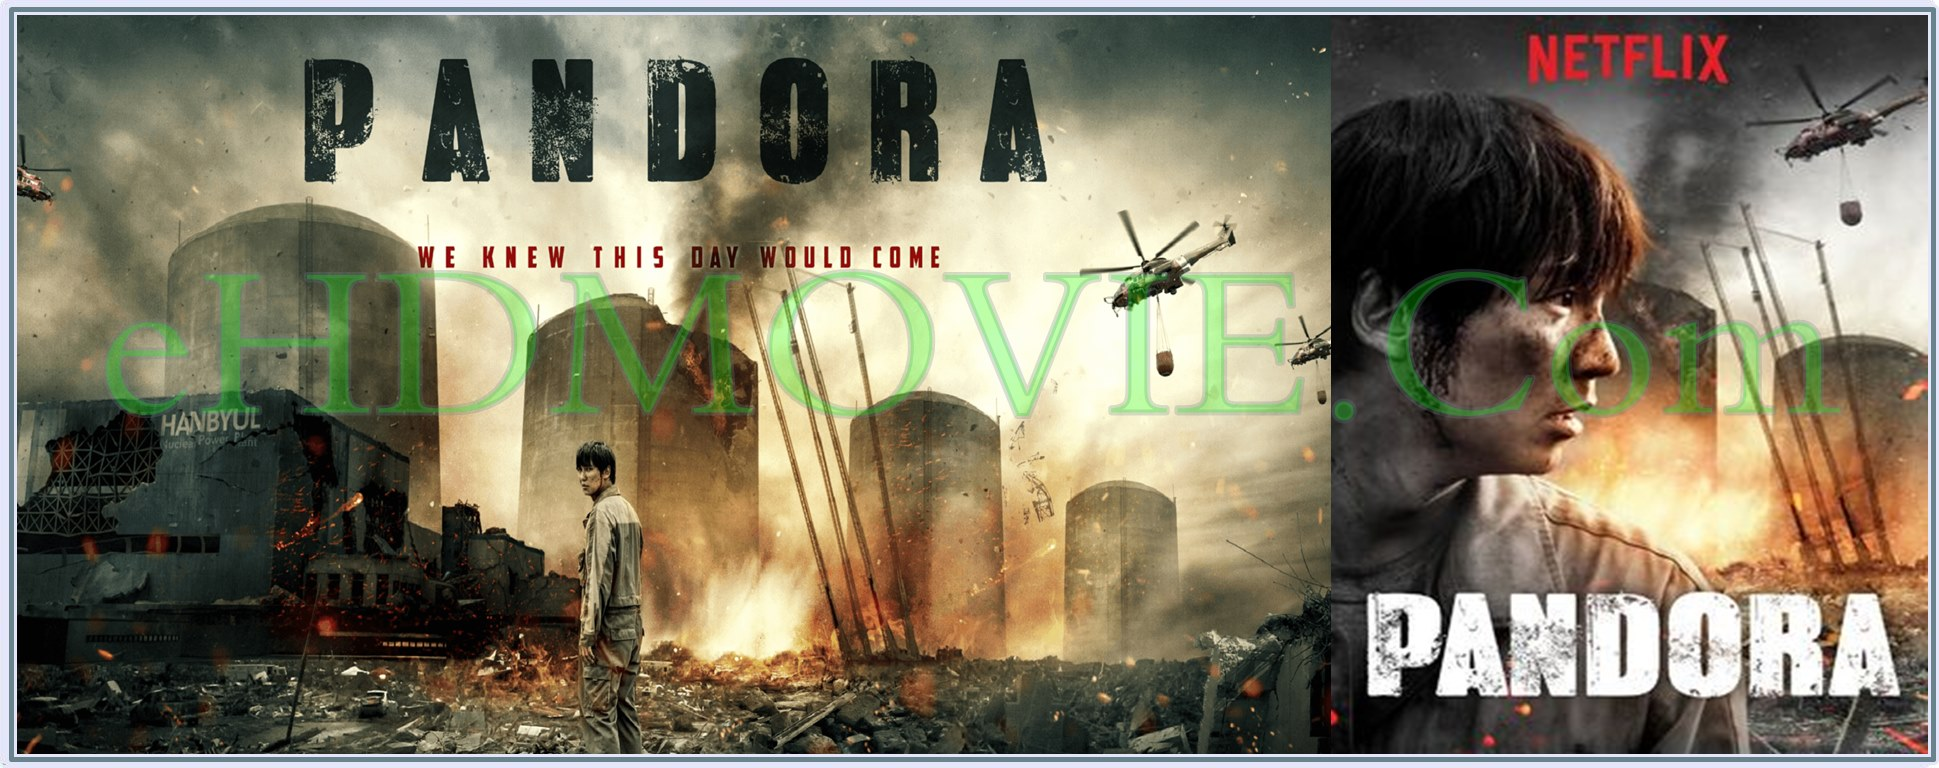 Pandora 2016 Full Movie Korean 720p - 480p ORG BRRip 500MB - 850MB ESubs Free Download